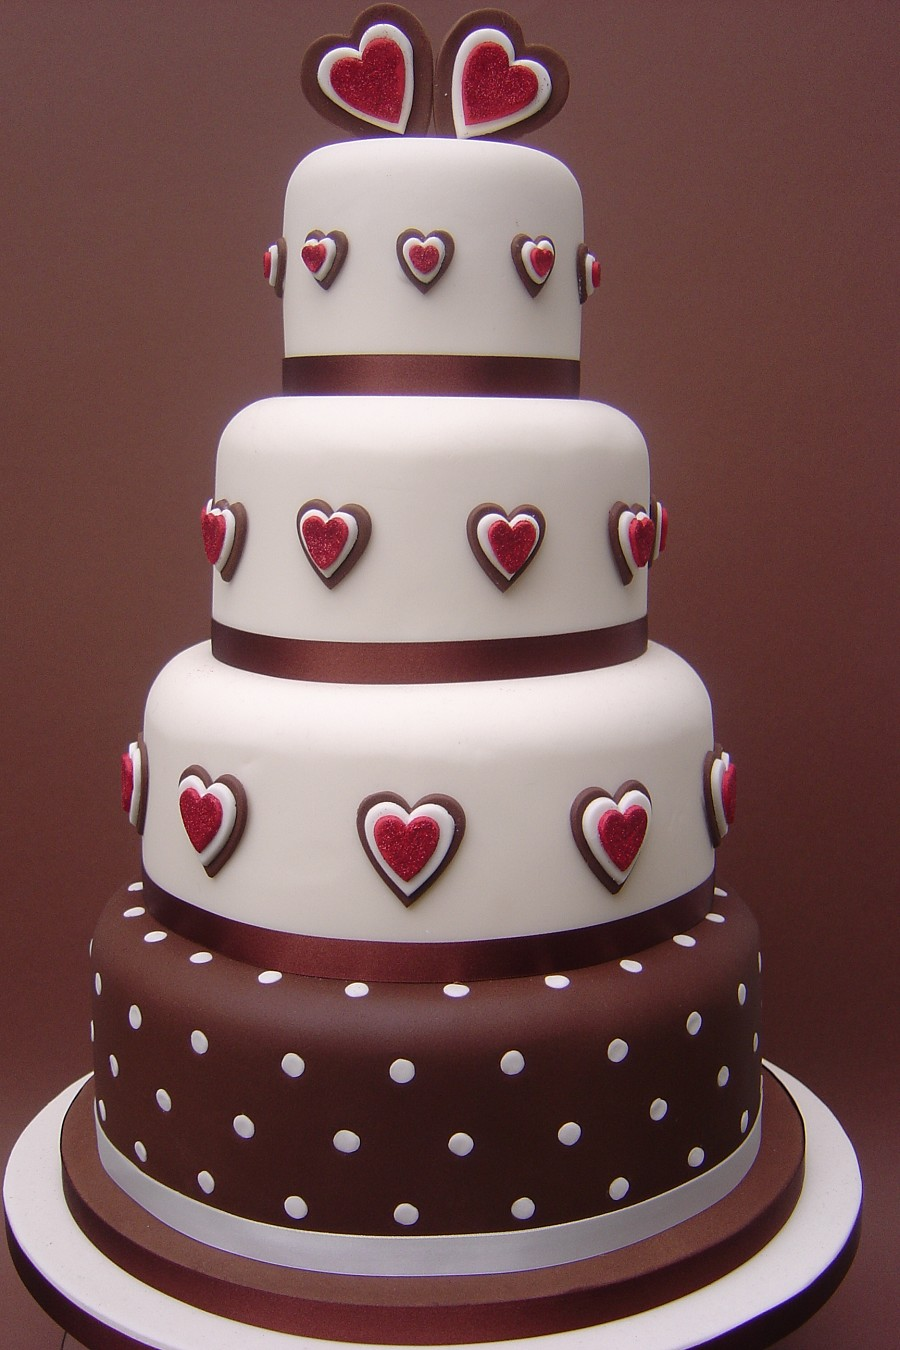 Cake Designs For Wedding : Wedding cake Ideas collection